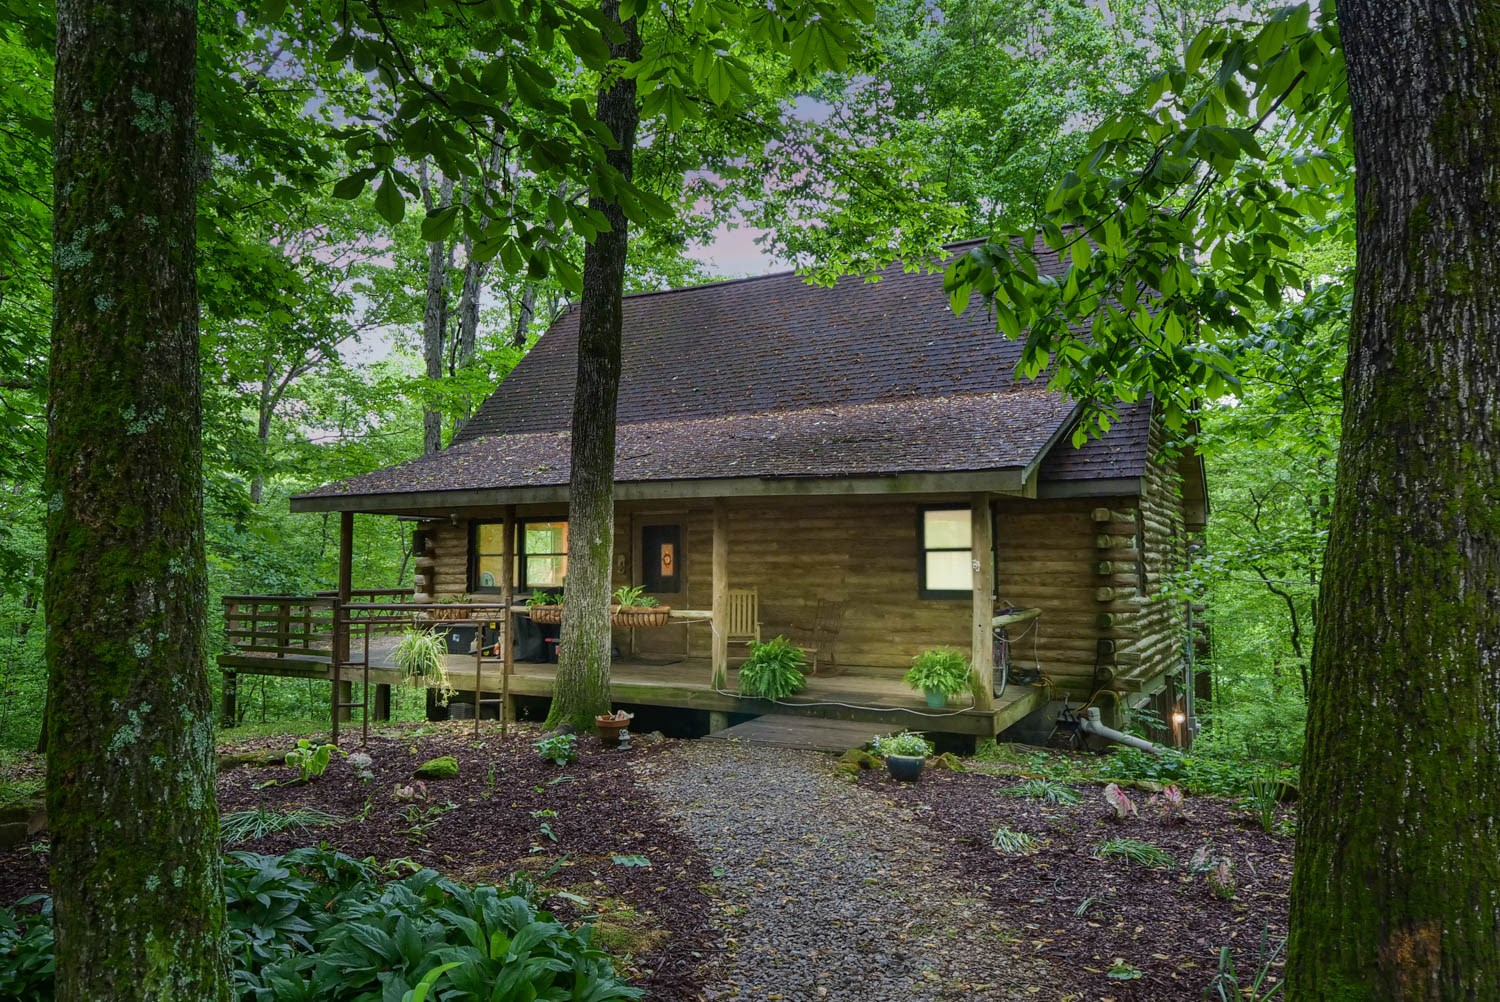 Magical Log Cottage for sale in Middle Tennessee on 21 Acres